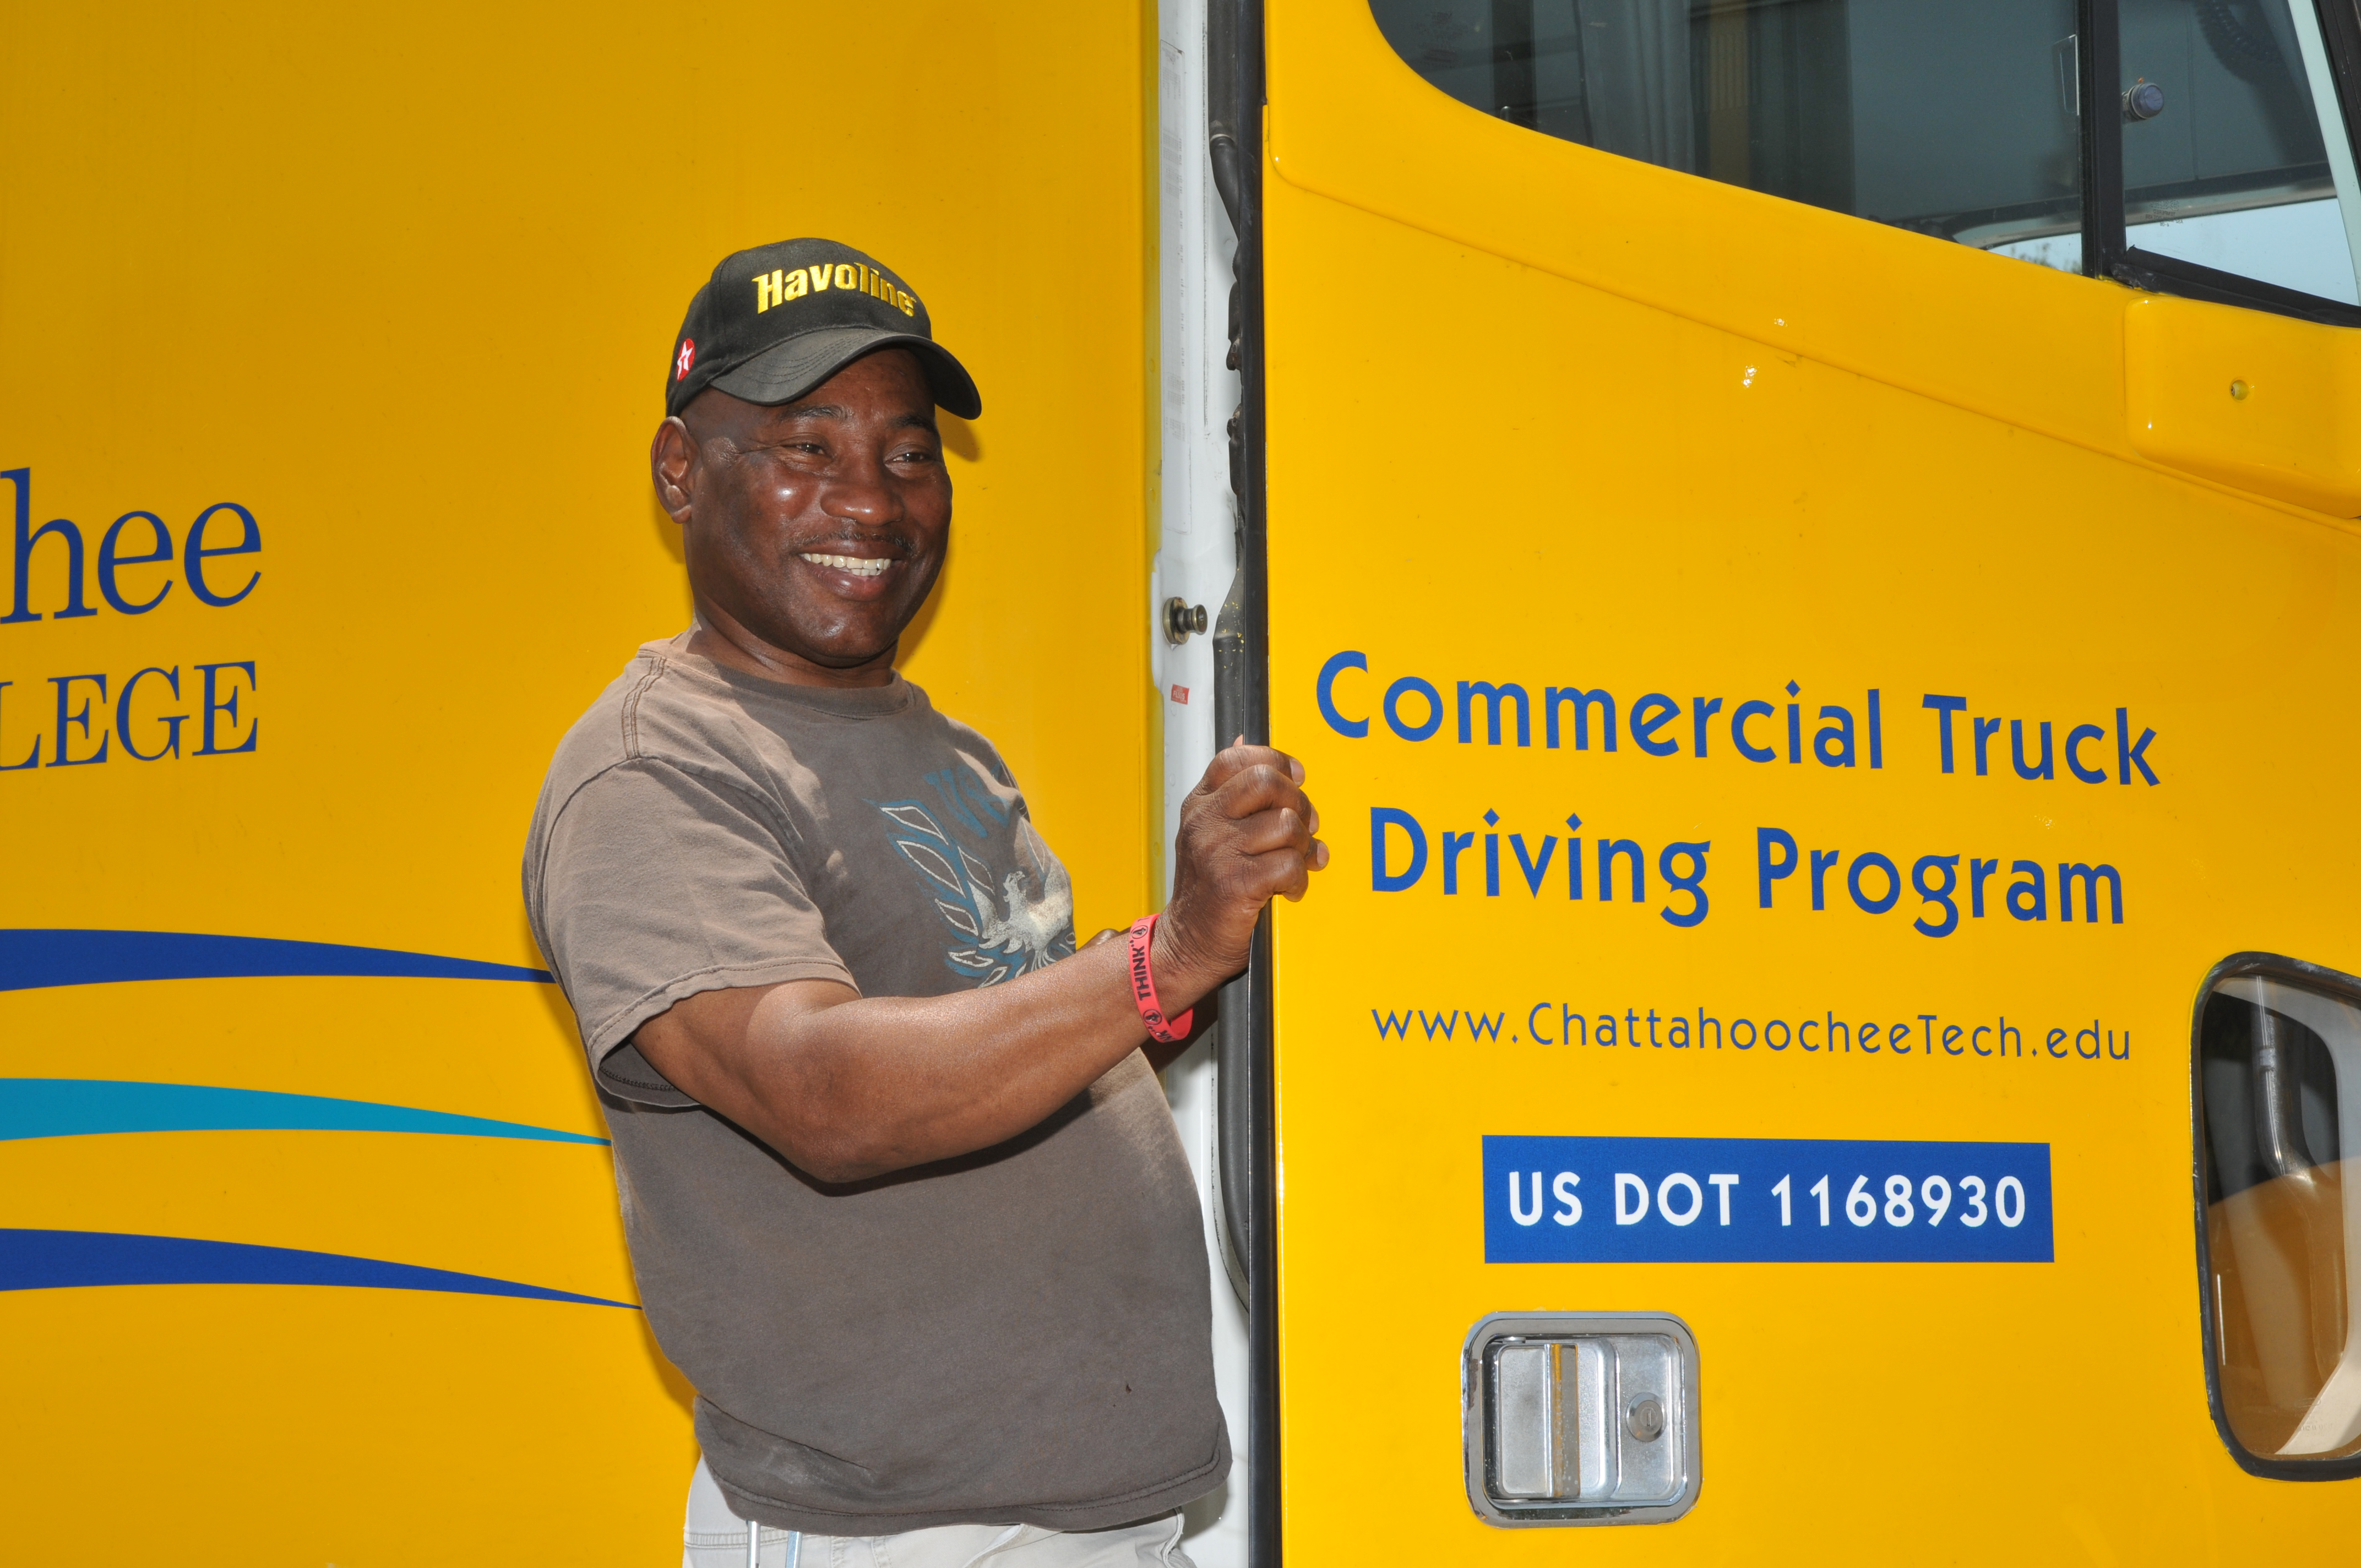 Commercial truck driving program student